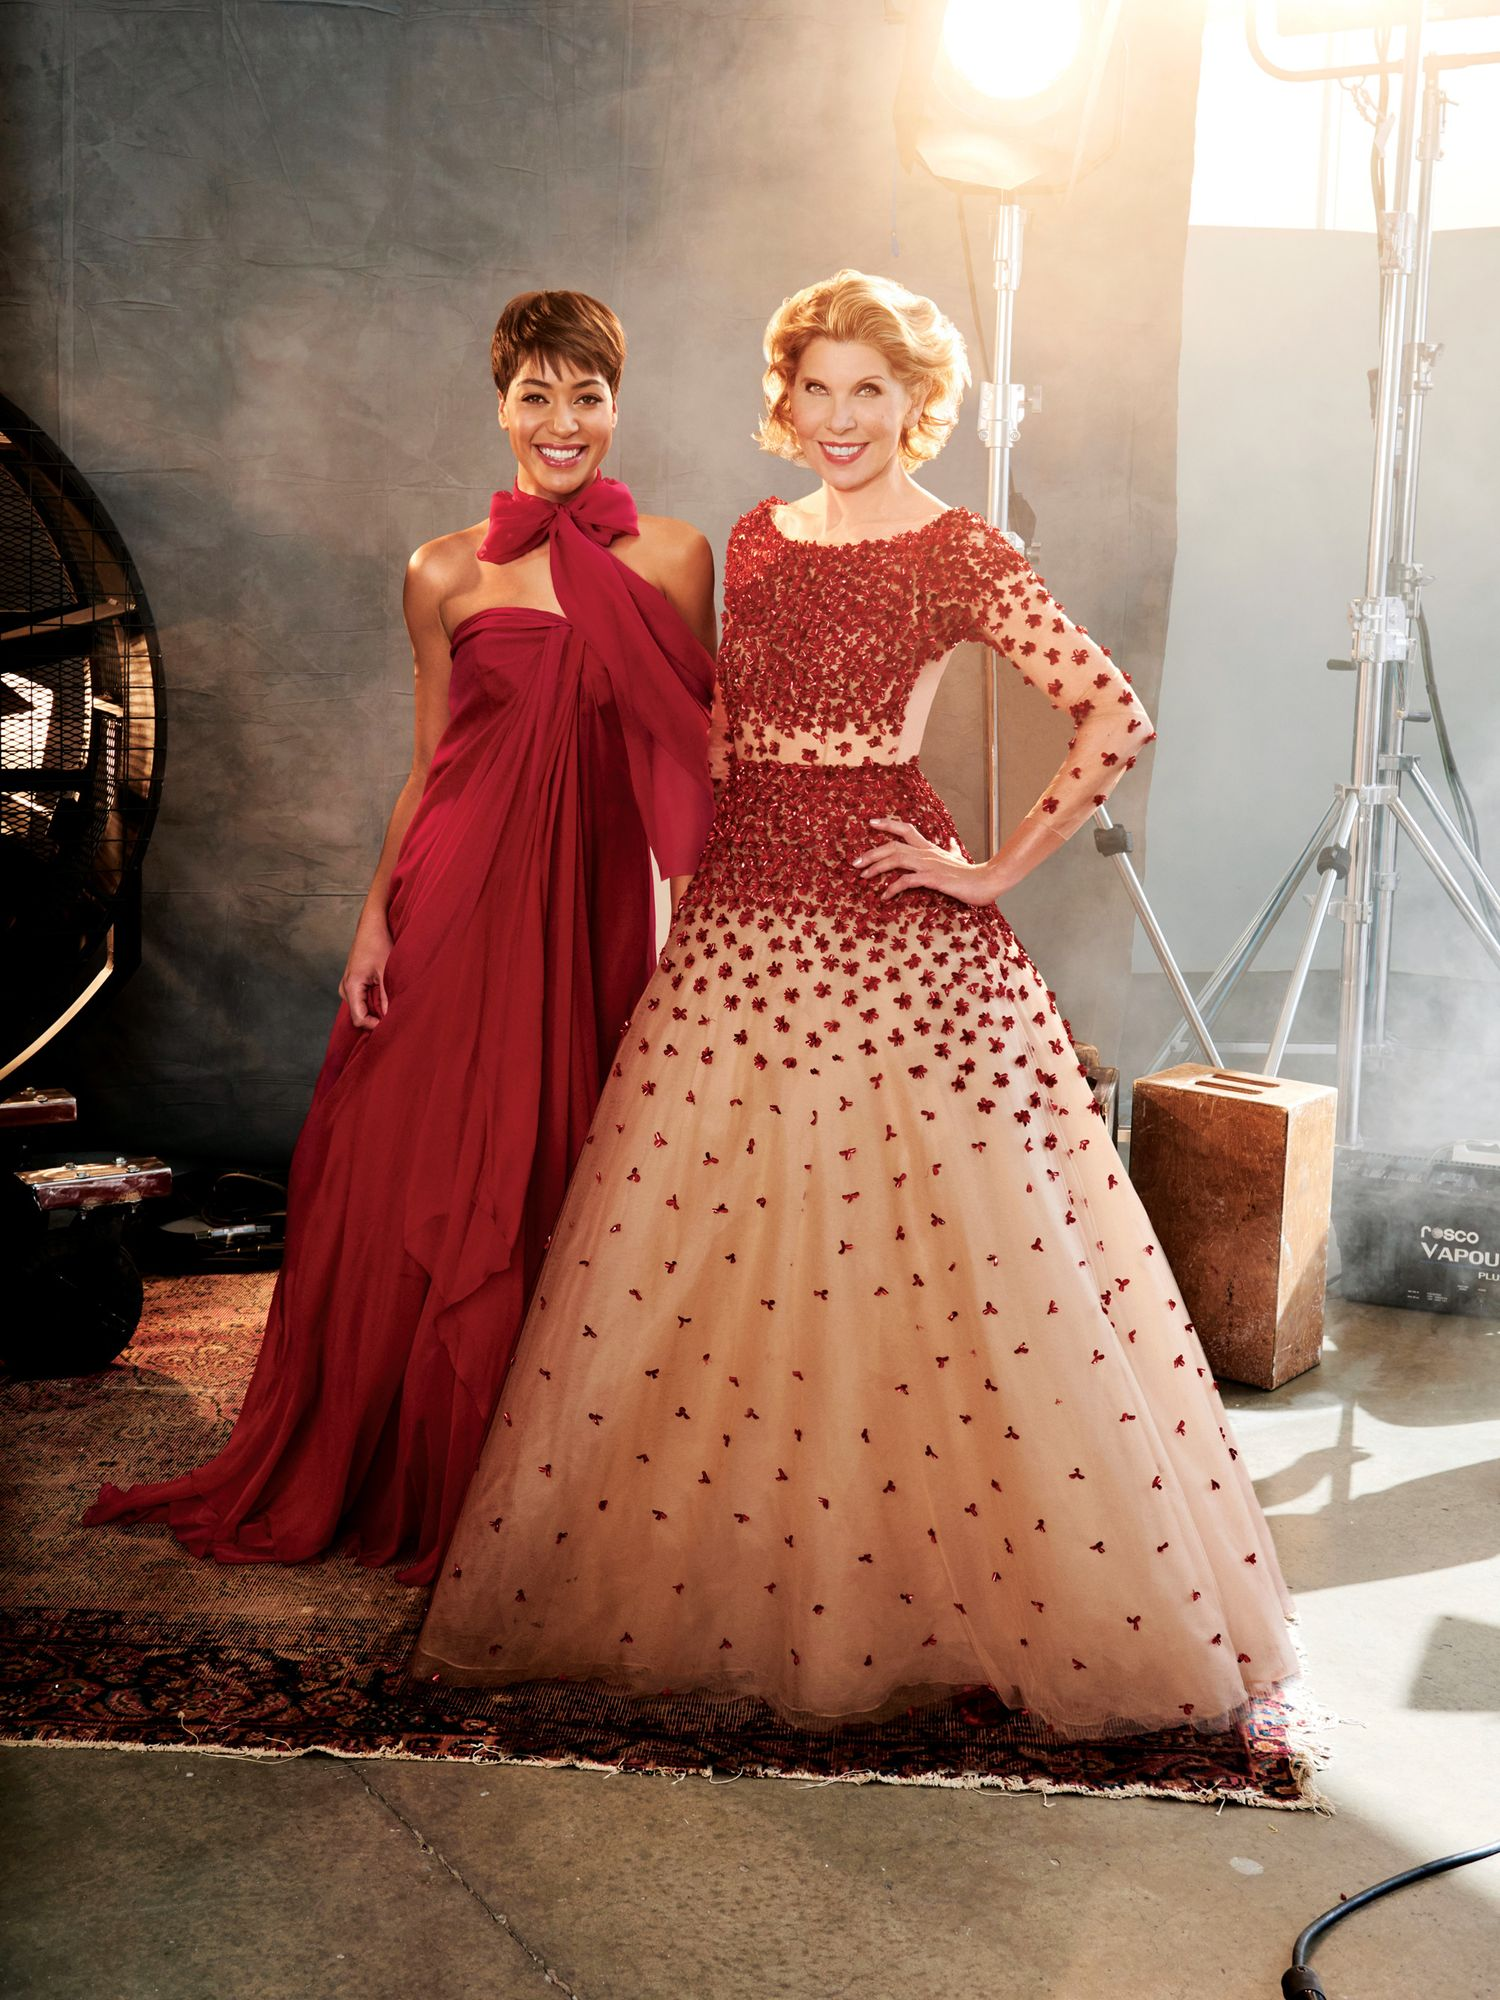 Cush Jumbo and Christine Baranski in red ball gowns.